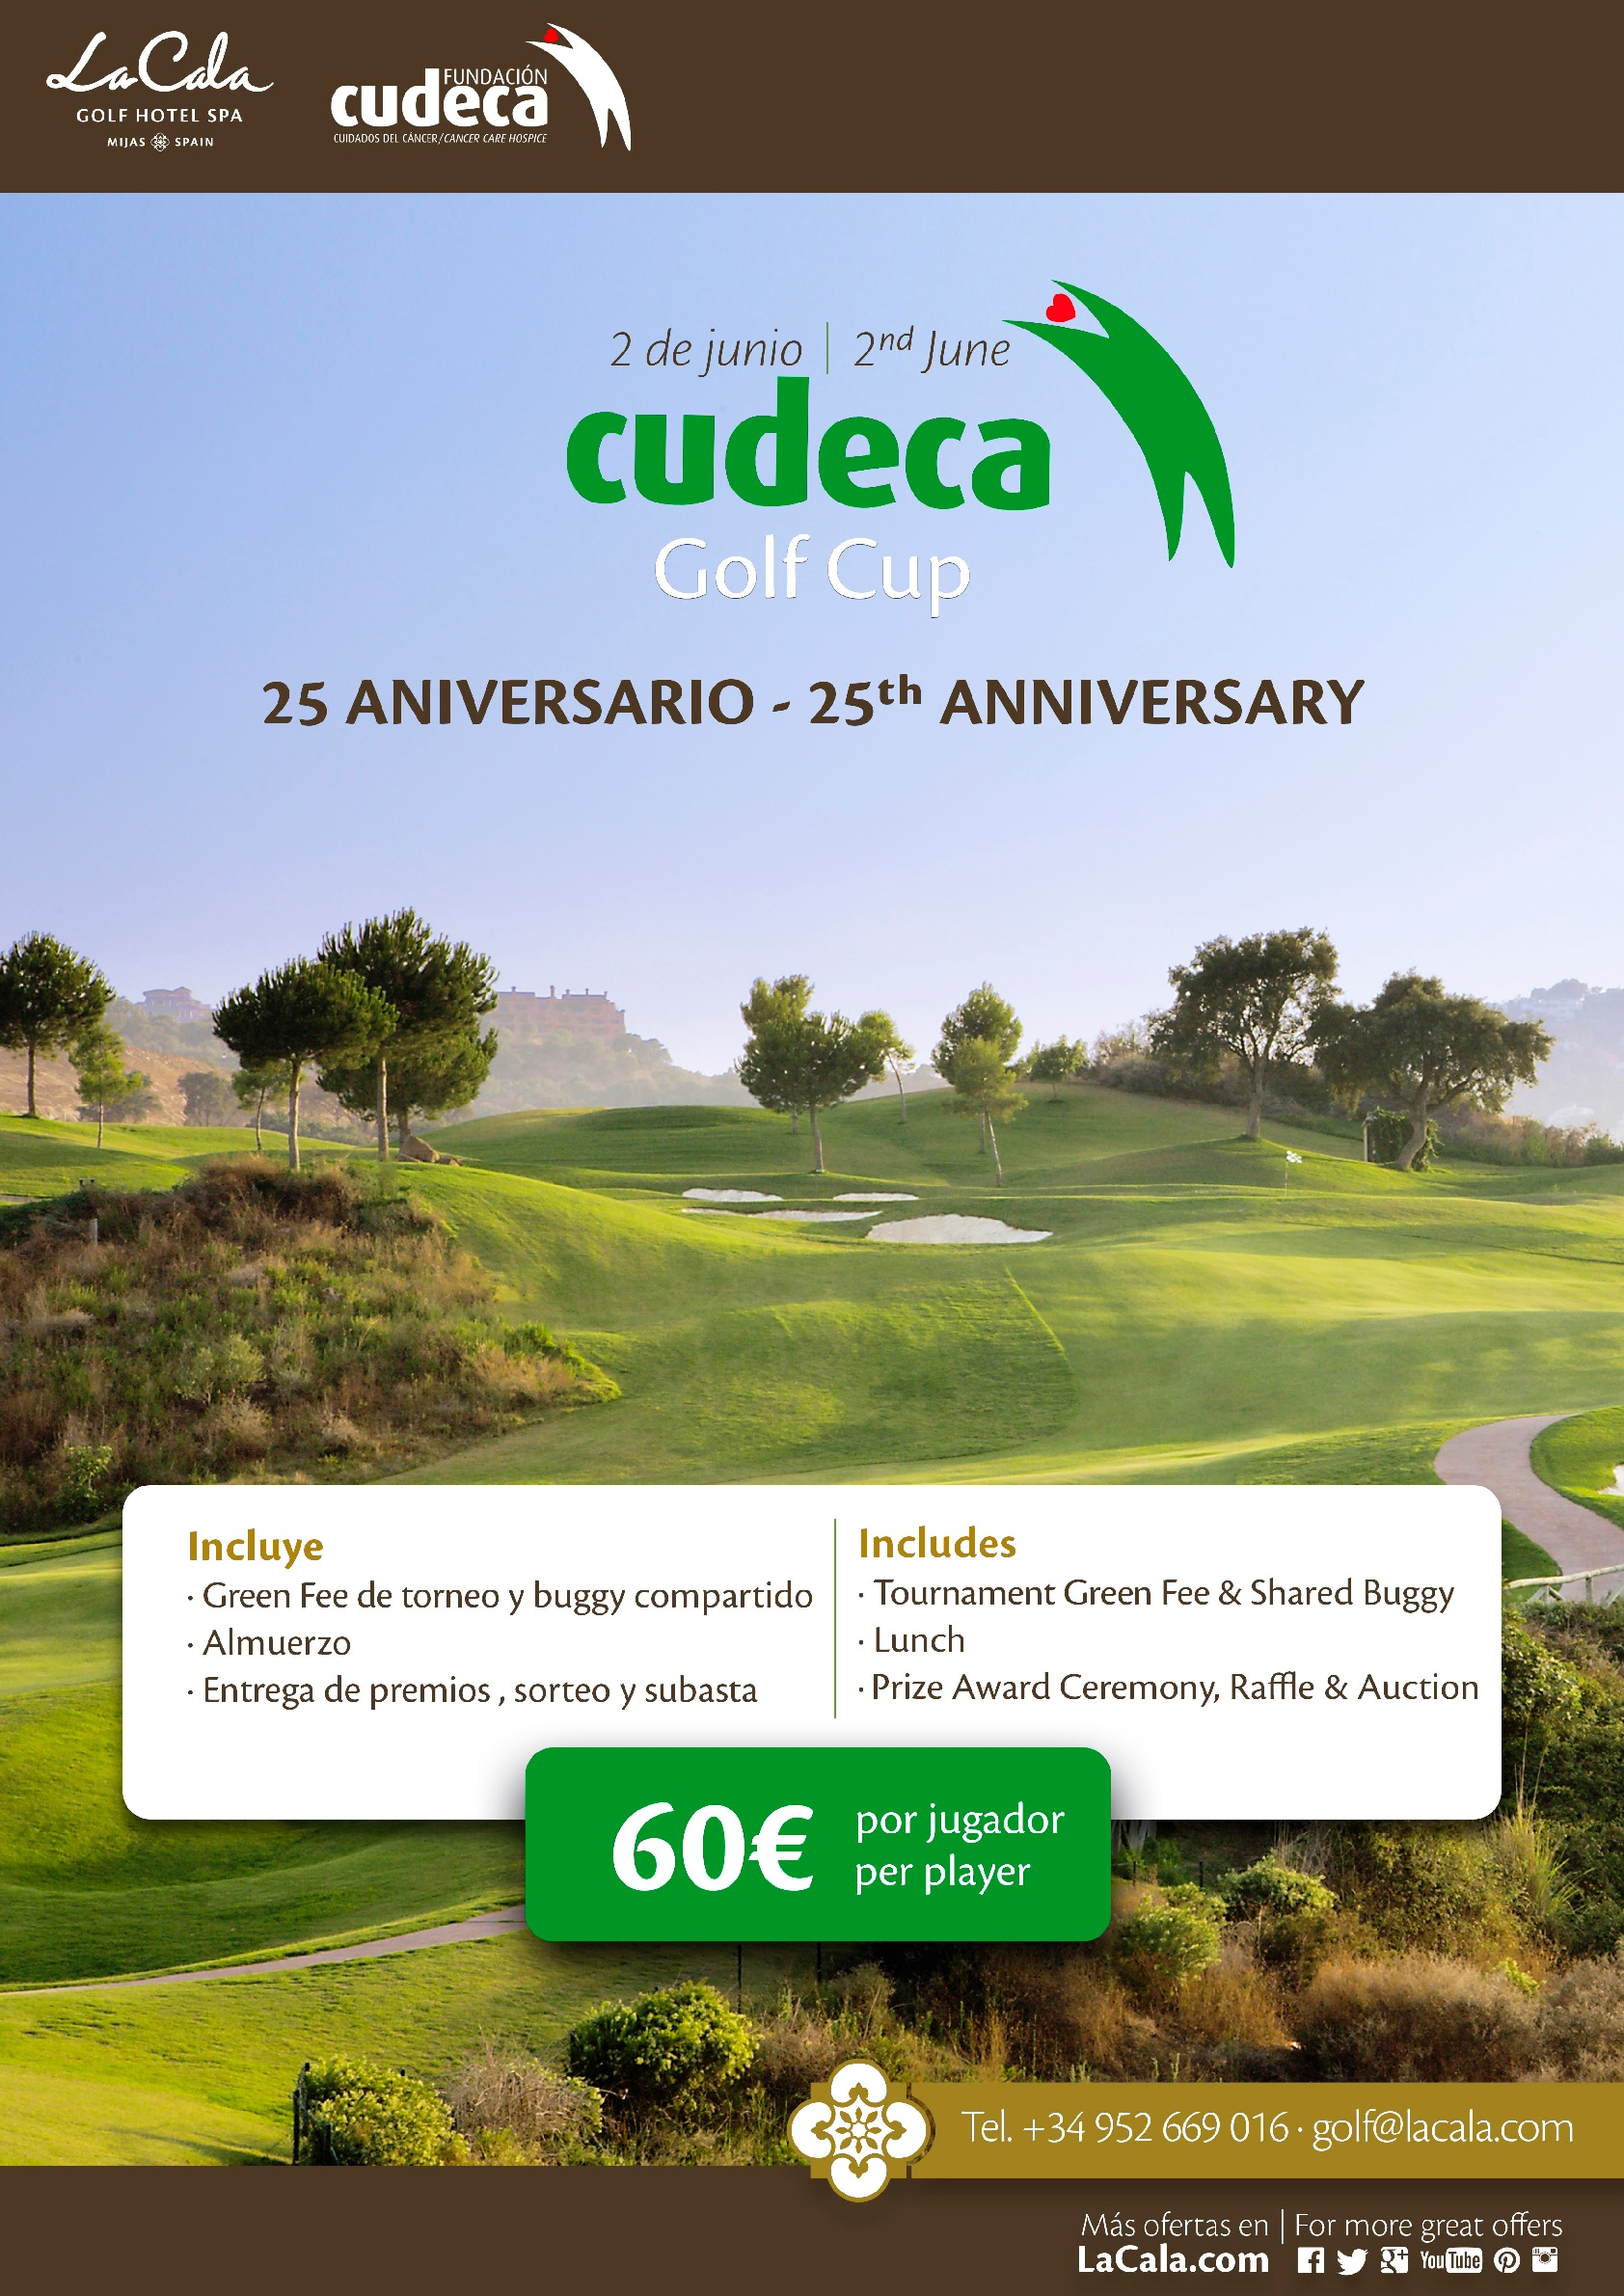 XXV CUDECA Golf Cup Anniversary at La Cala Resort